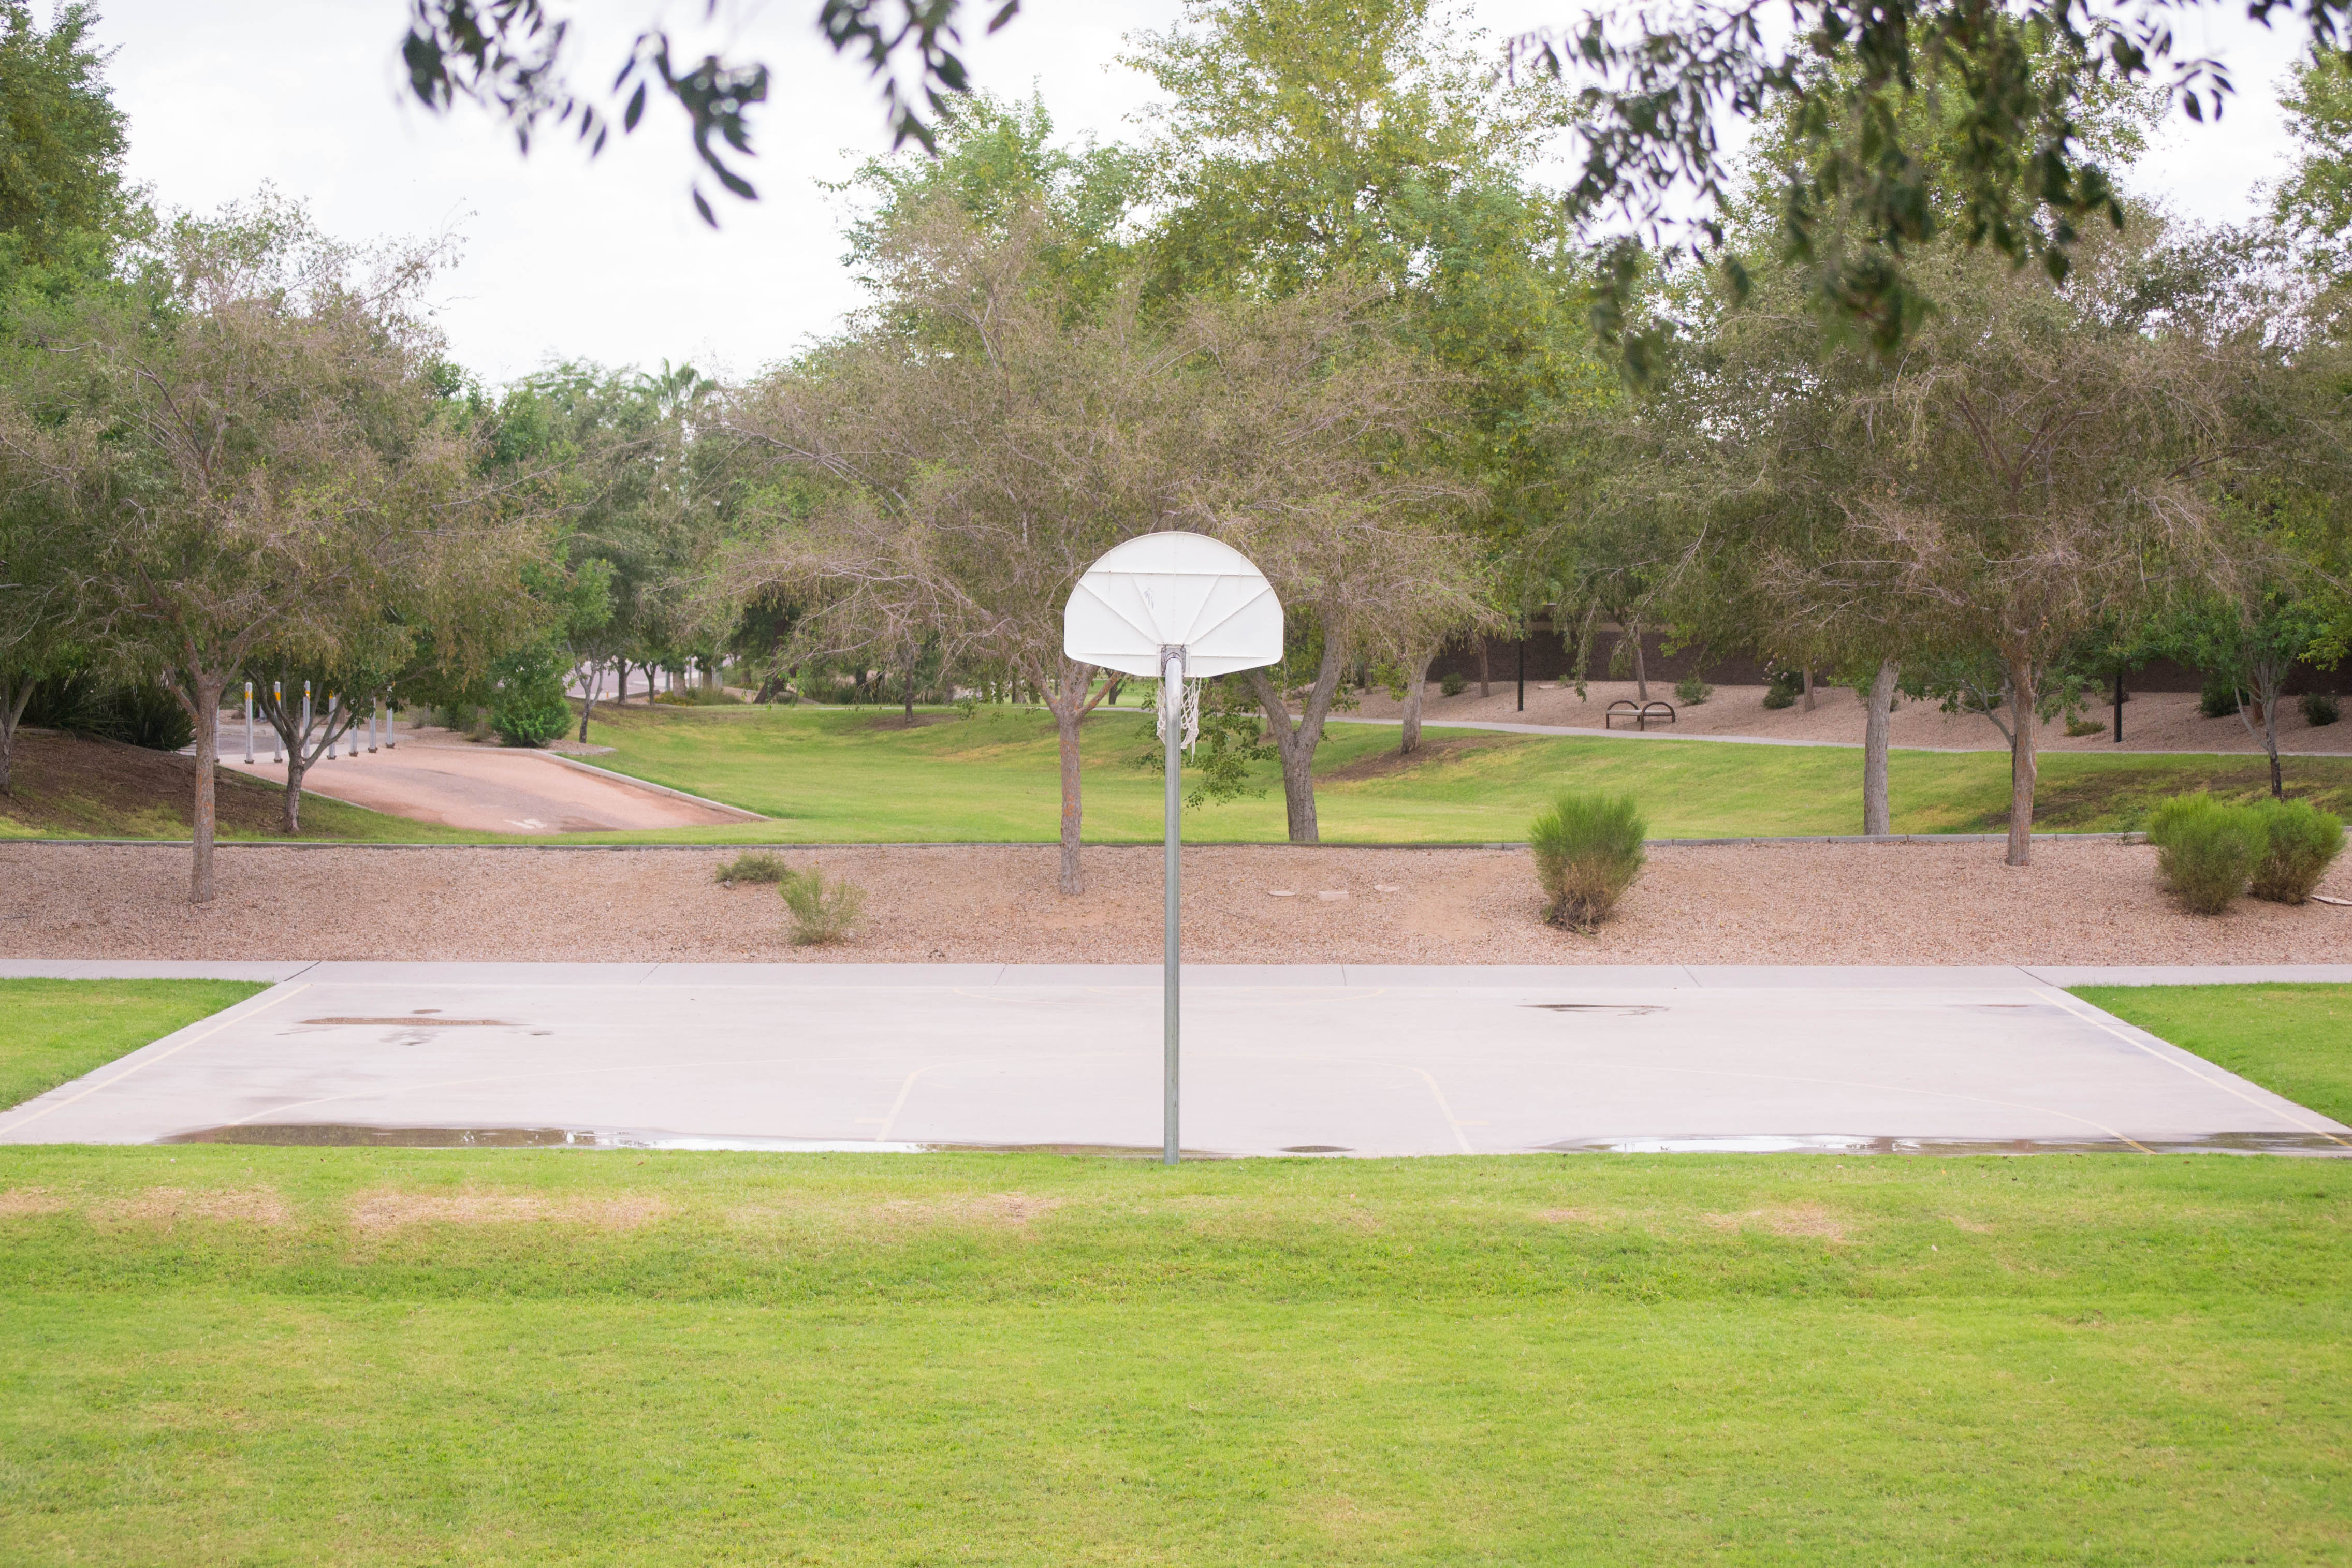 Basketball Court and Park